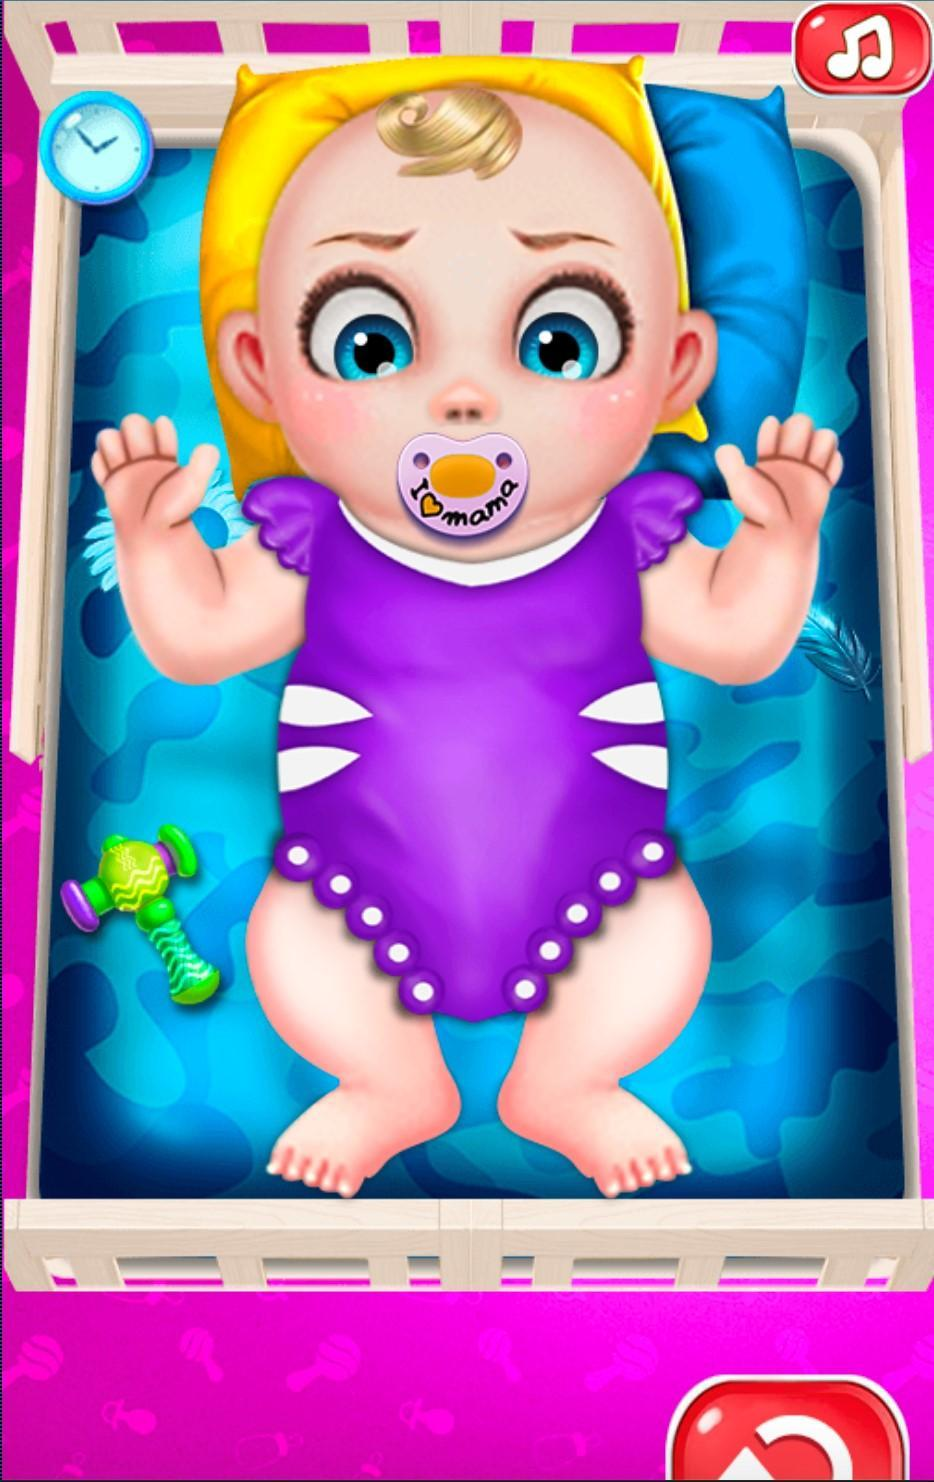 Mommy Bayi Baru Lahir Game Hamil For Android Apk Download